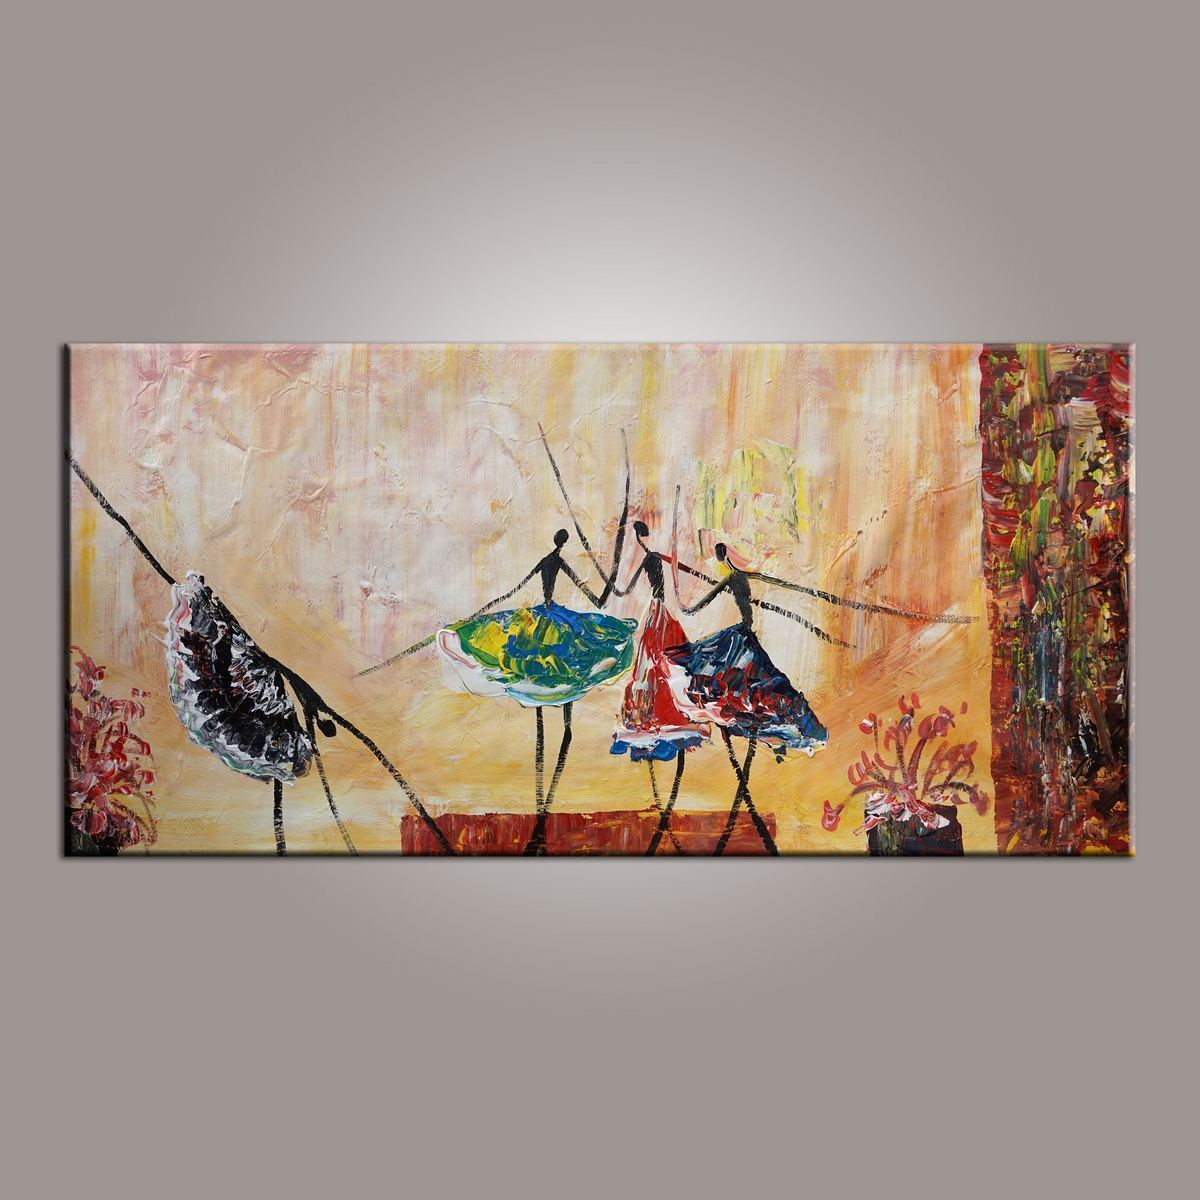 Canvas Painting, Large Art, Ballet Dancer Art, Abstract Painting, Abstract Art, Wall Art, Wall Hanging, Bedroom Wall Art, Modern Art, Painting for Sale-Grace Painting Crafts